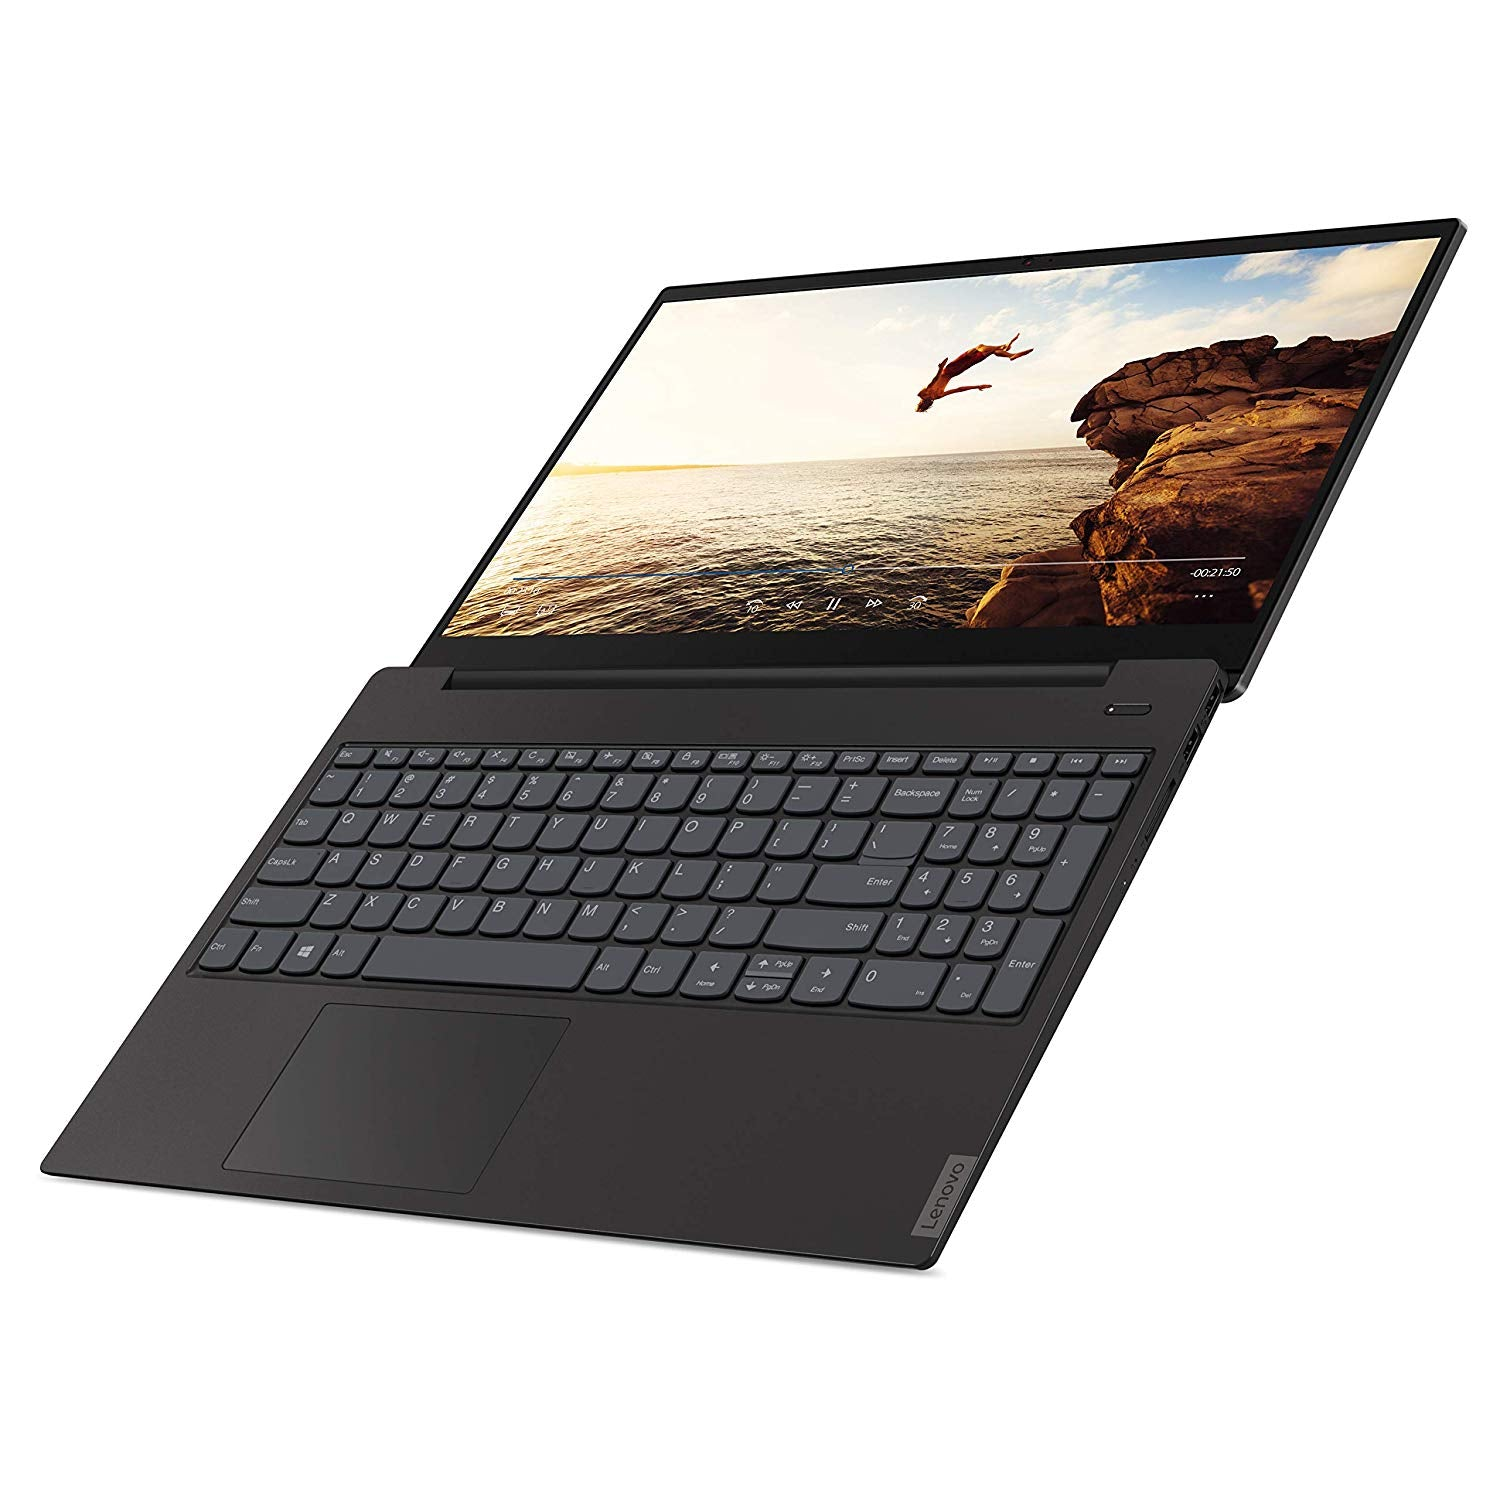 "Lenovo IdeaPad S340 15.6"" Laptop - Intel Core i3 (up to 3.90 GHz) - 8GB DDR4 Memory - 128GB NVMe SSD - USB Type-C - SD Reader - Backlit Keyboard - 720p Webcam - 1366x768 - Grey"